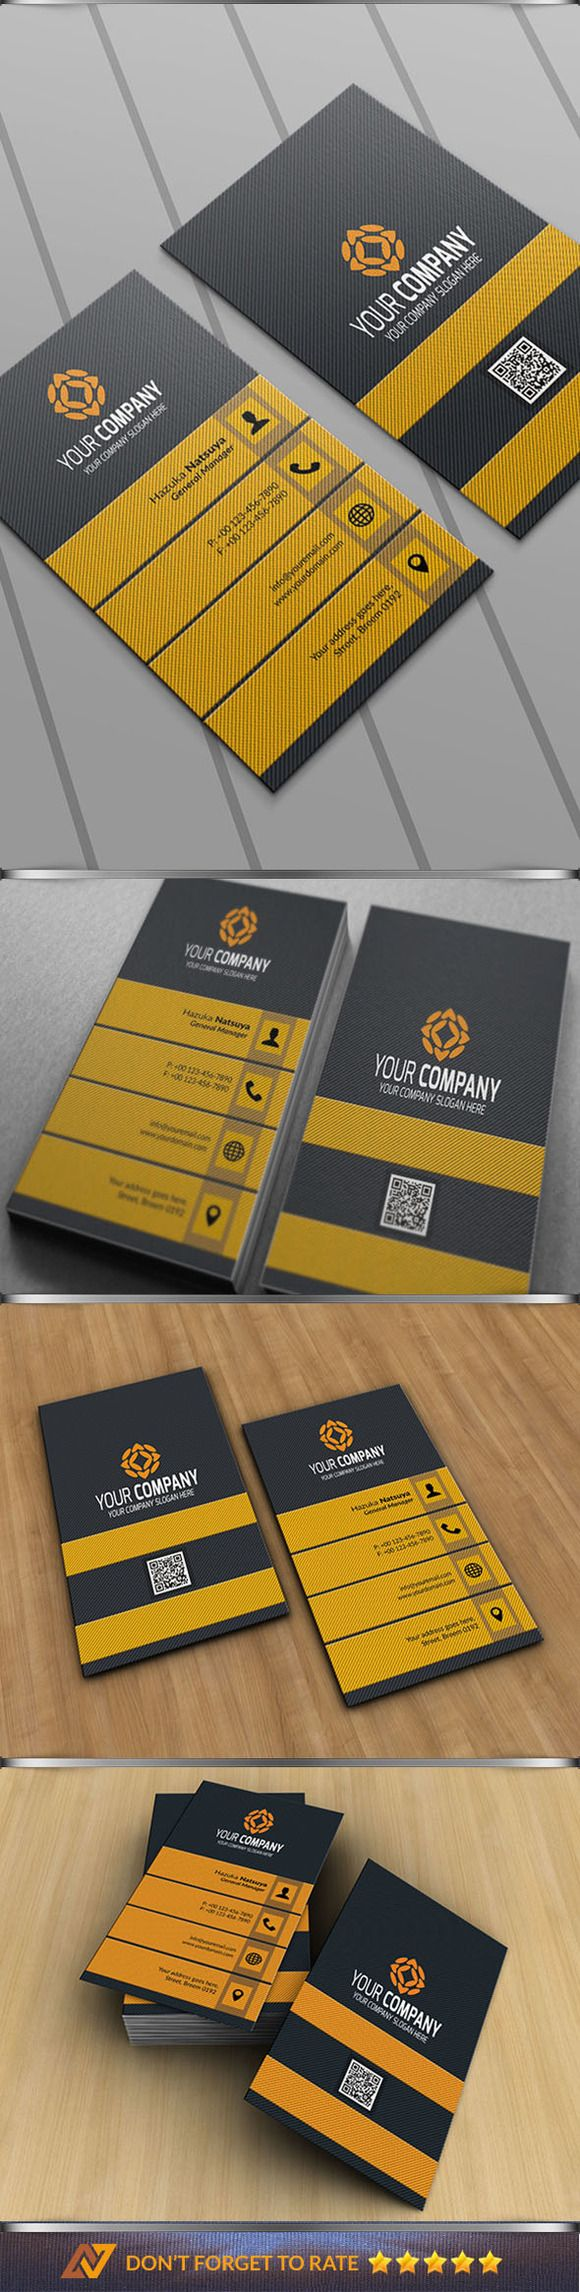 modern corporate business card by sukidesu on creativework247 - Graphic Design Business Ideas